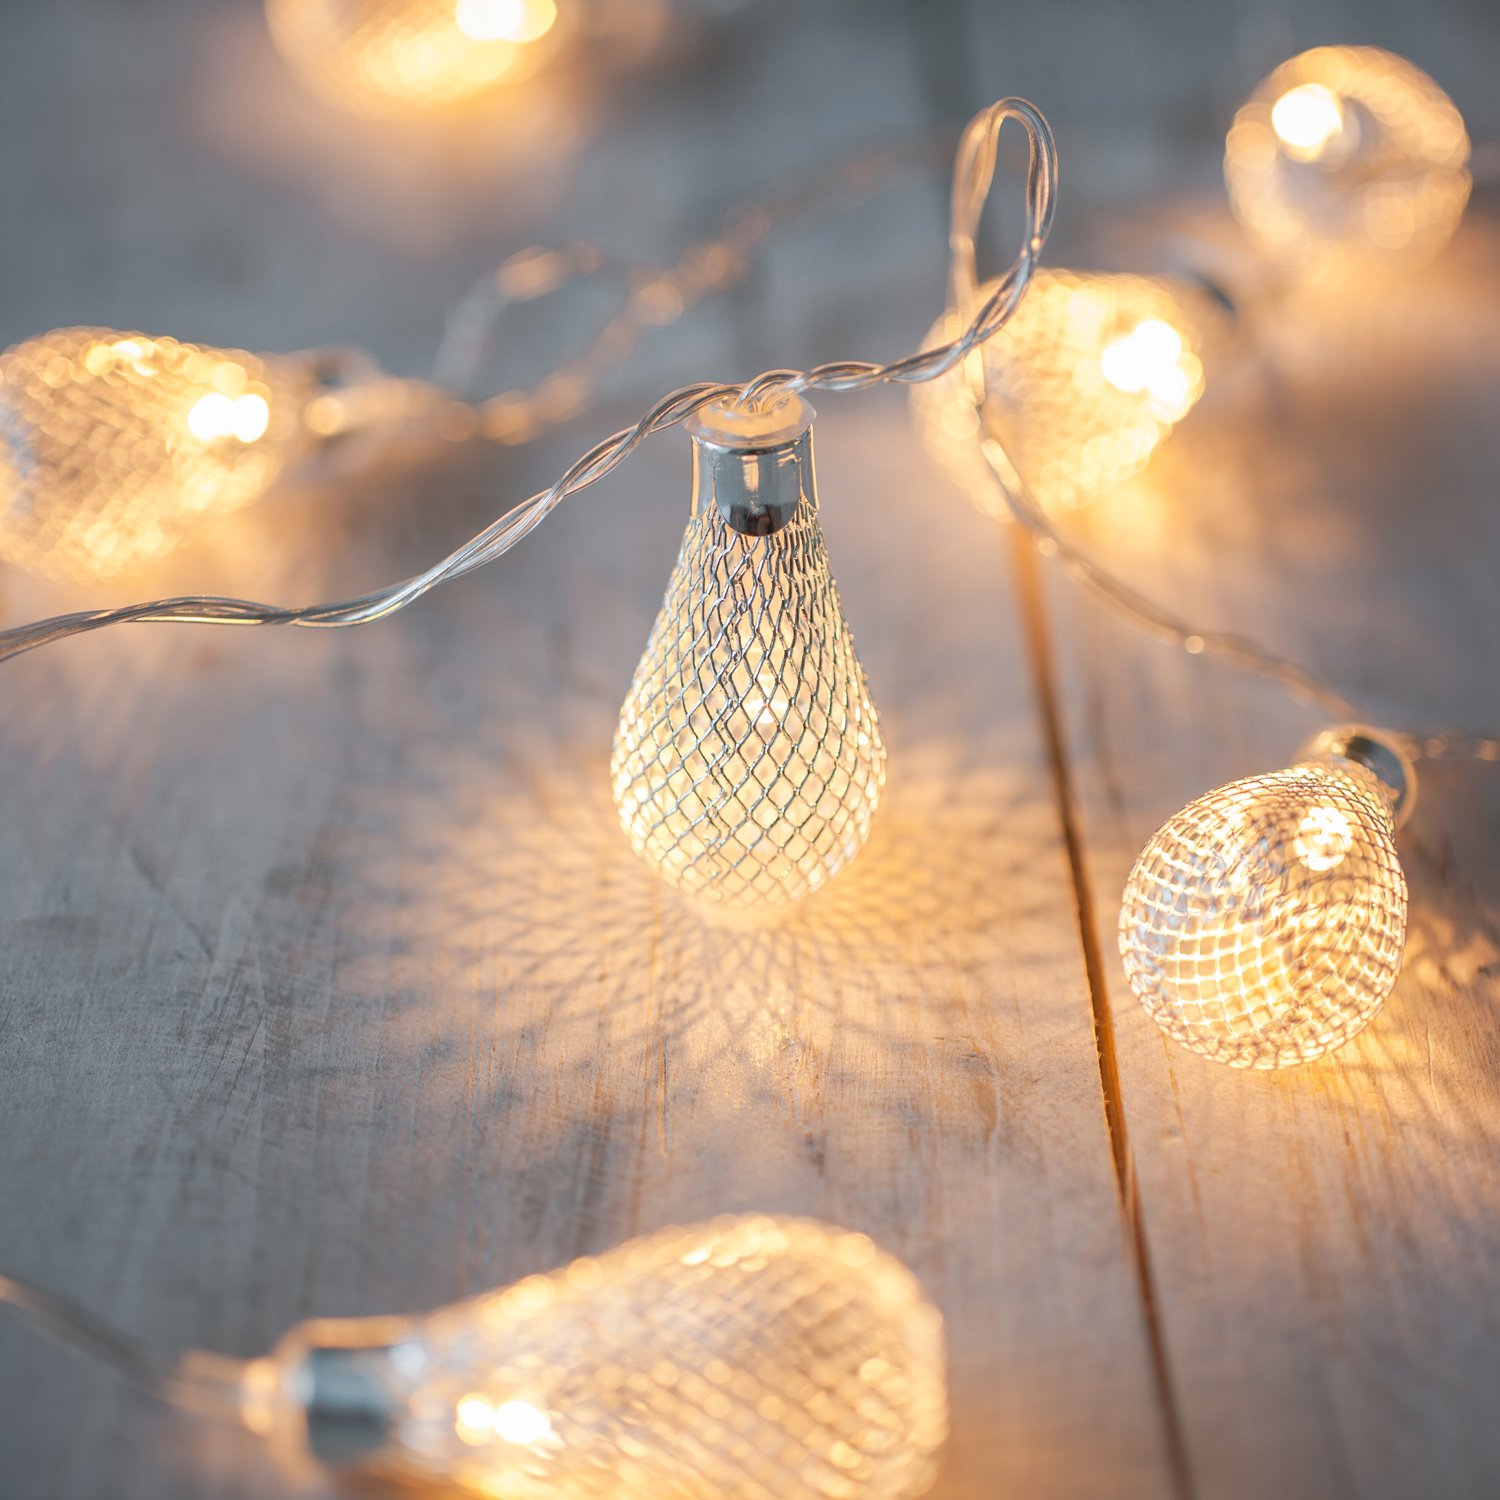 10 silver teardrop battery operated led fairy lights by lights4fun 10 silver teardrop battery operated led fairy lights by lights4fun amazon lighting aloadofball Image collections